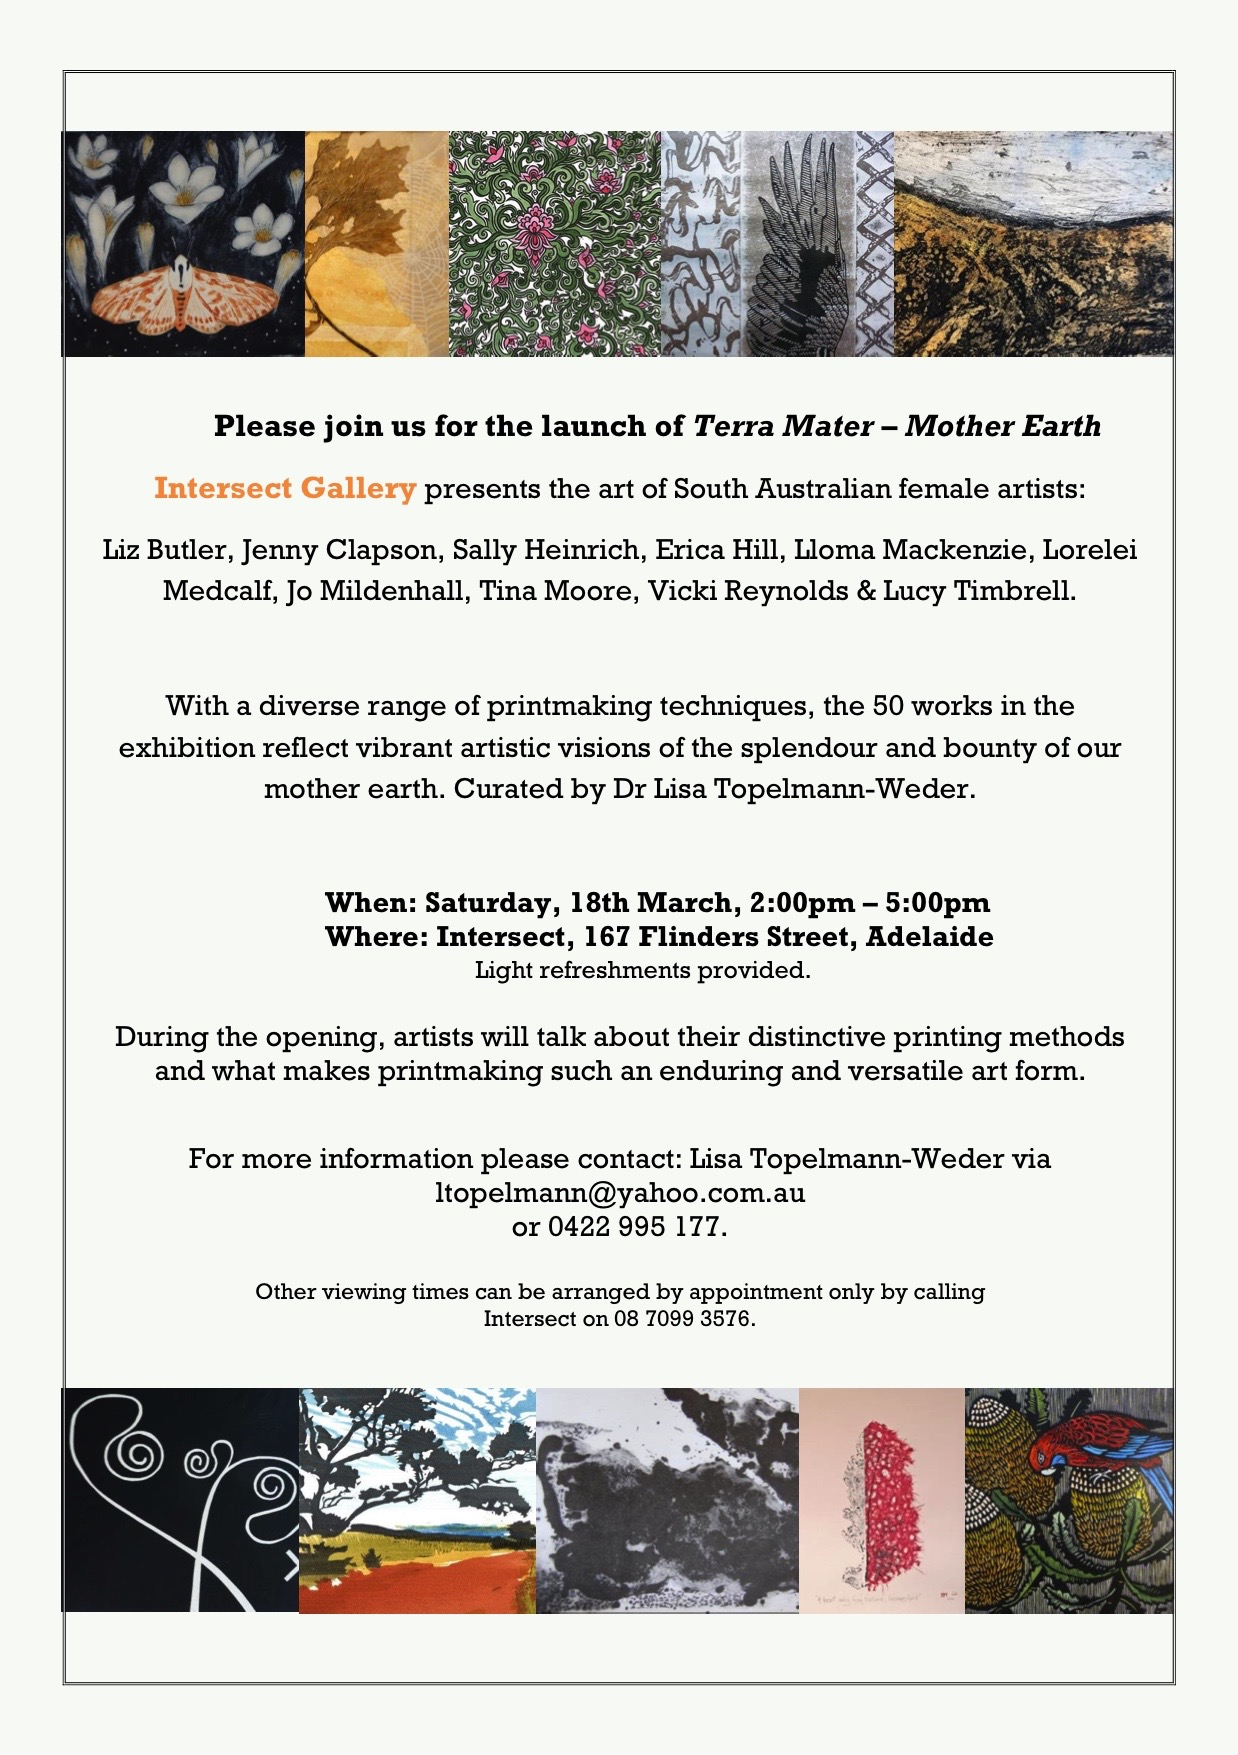 Invitation to Terra Mater   Exhibition Launch at Intersect Gallery.jpg